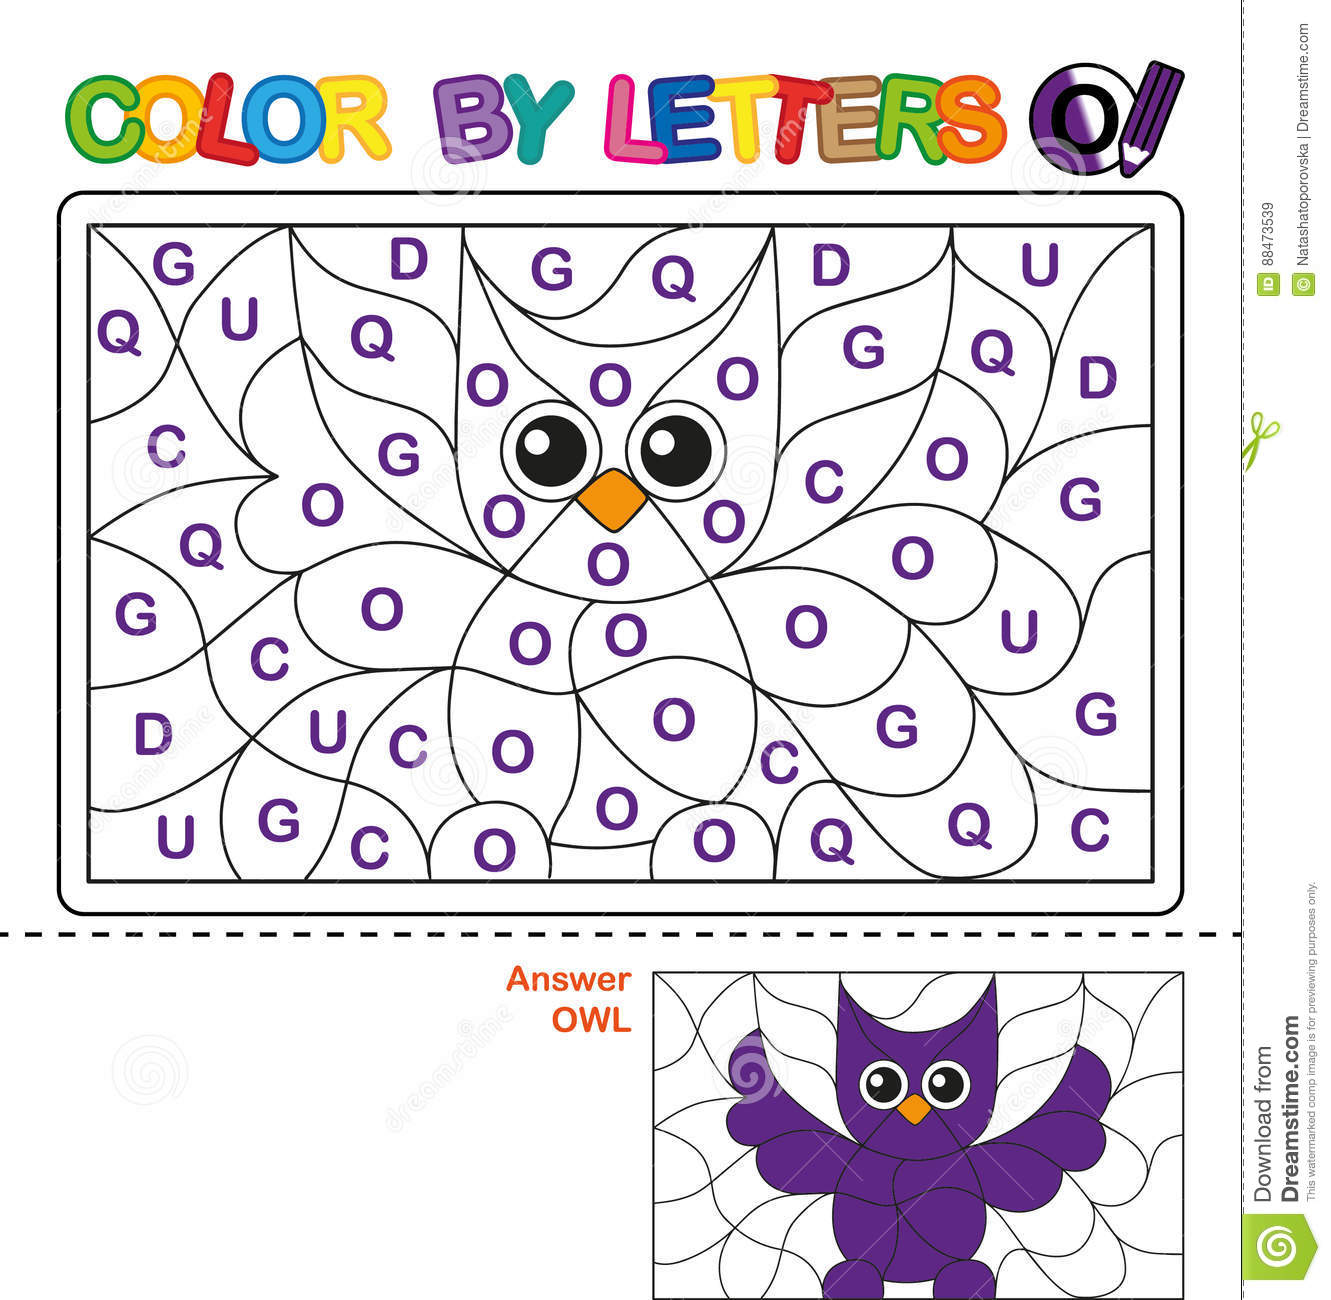 Color By Letter Puzzle For Children Owl Stock Vector